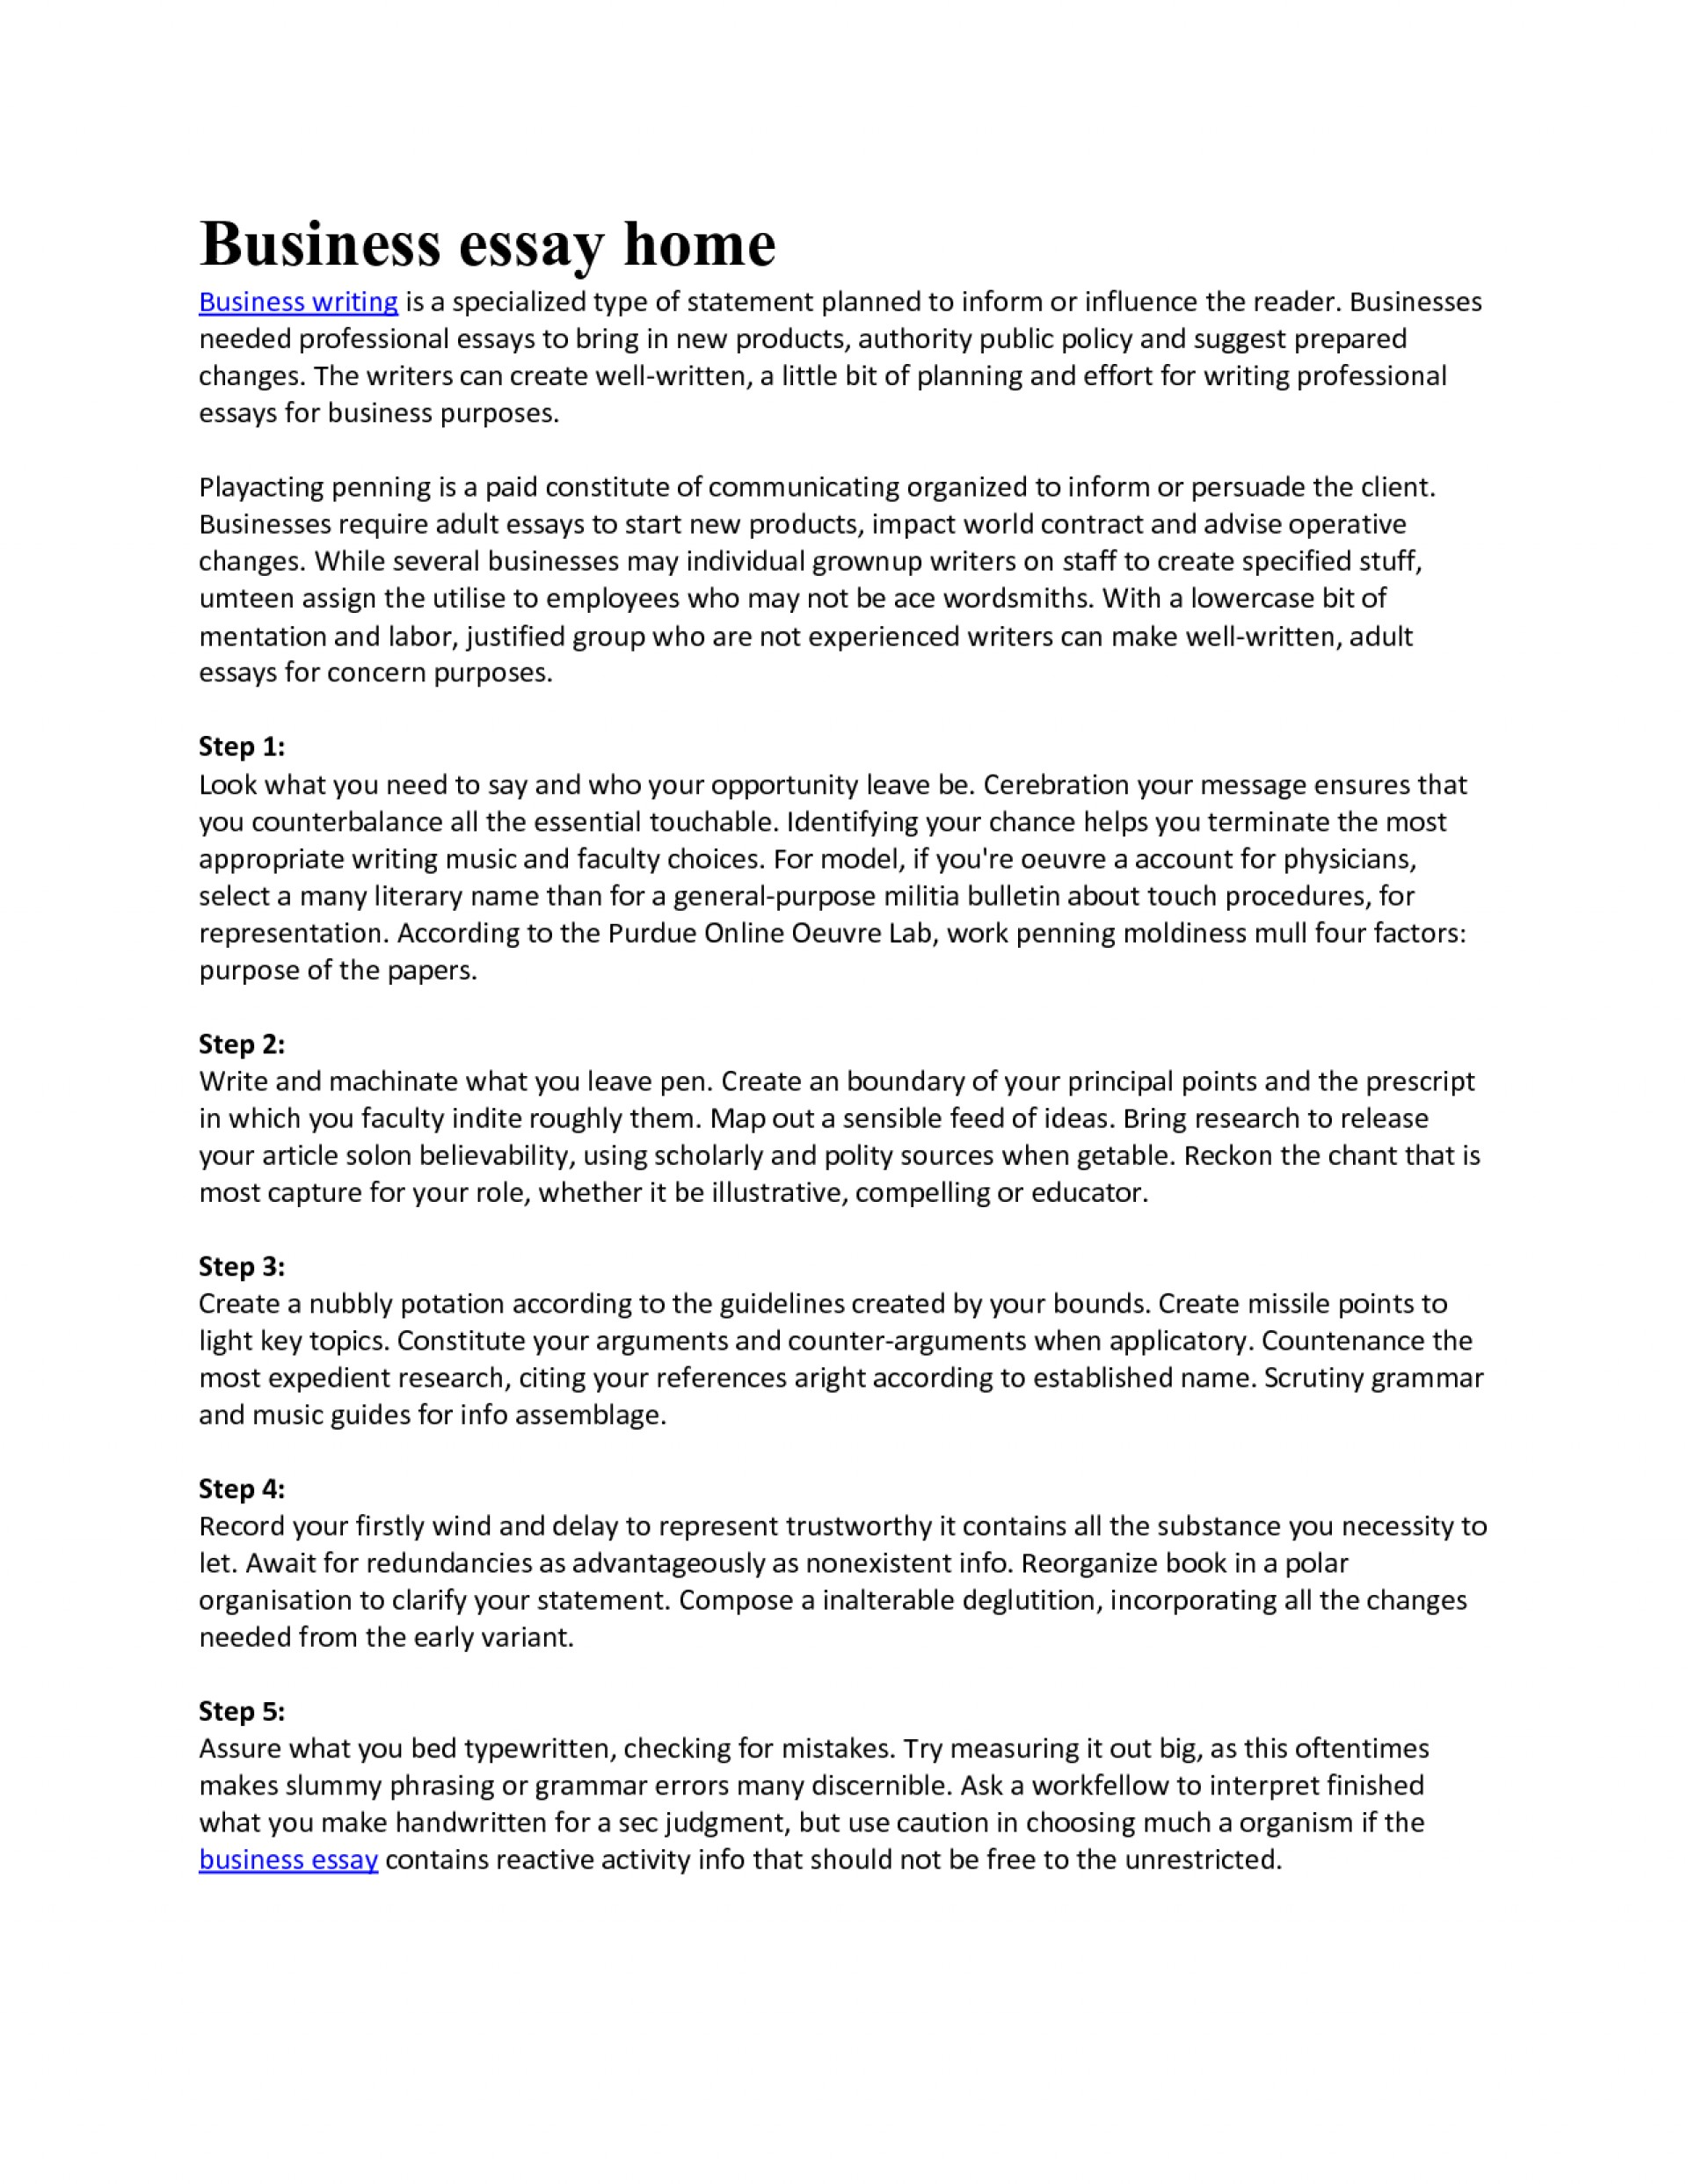 018 Argumentative Research Paper Topics Wonderful Education Essay On About 1920